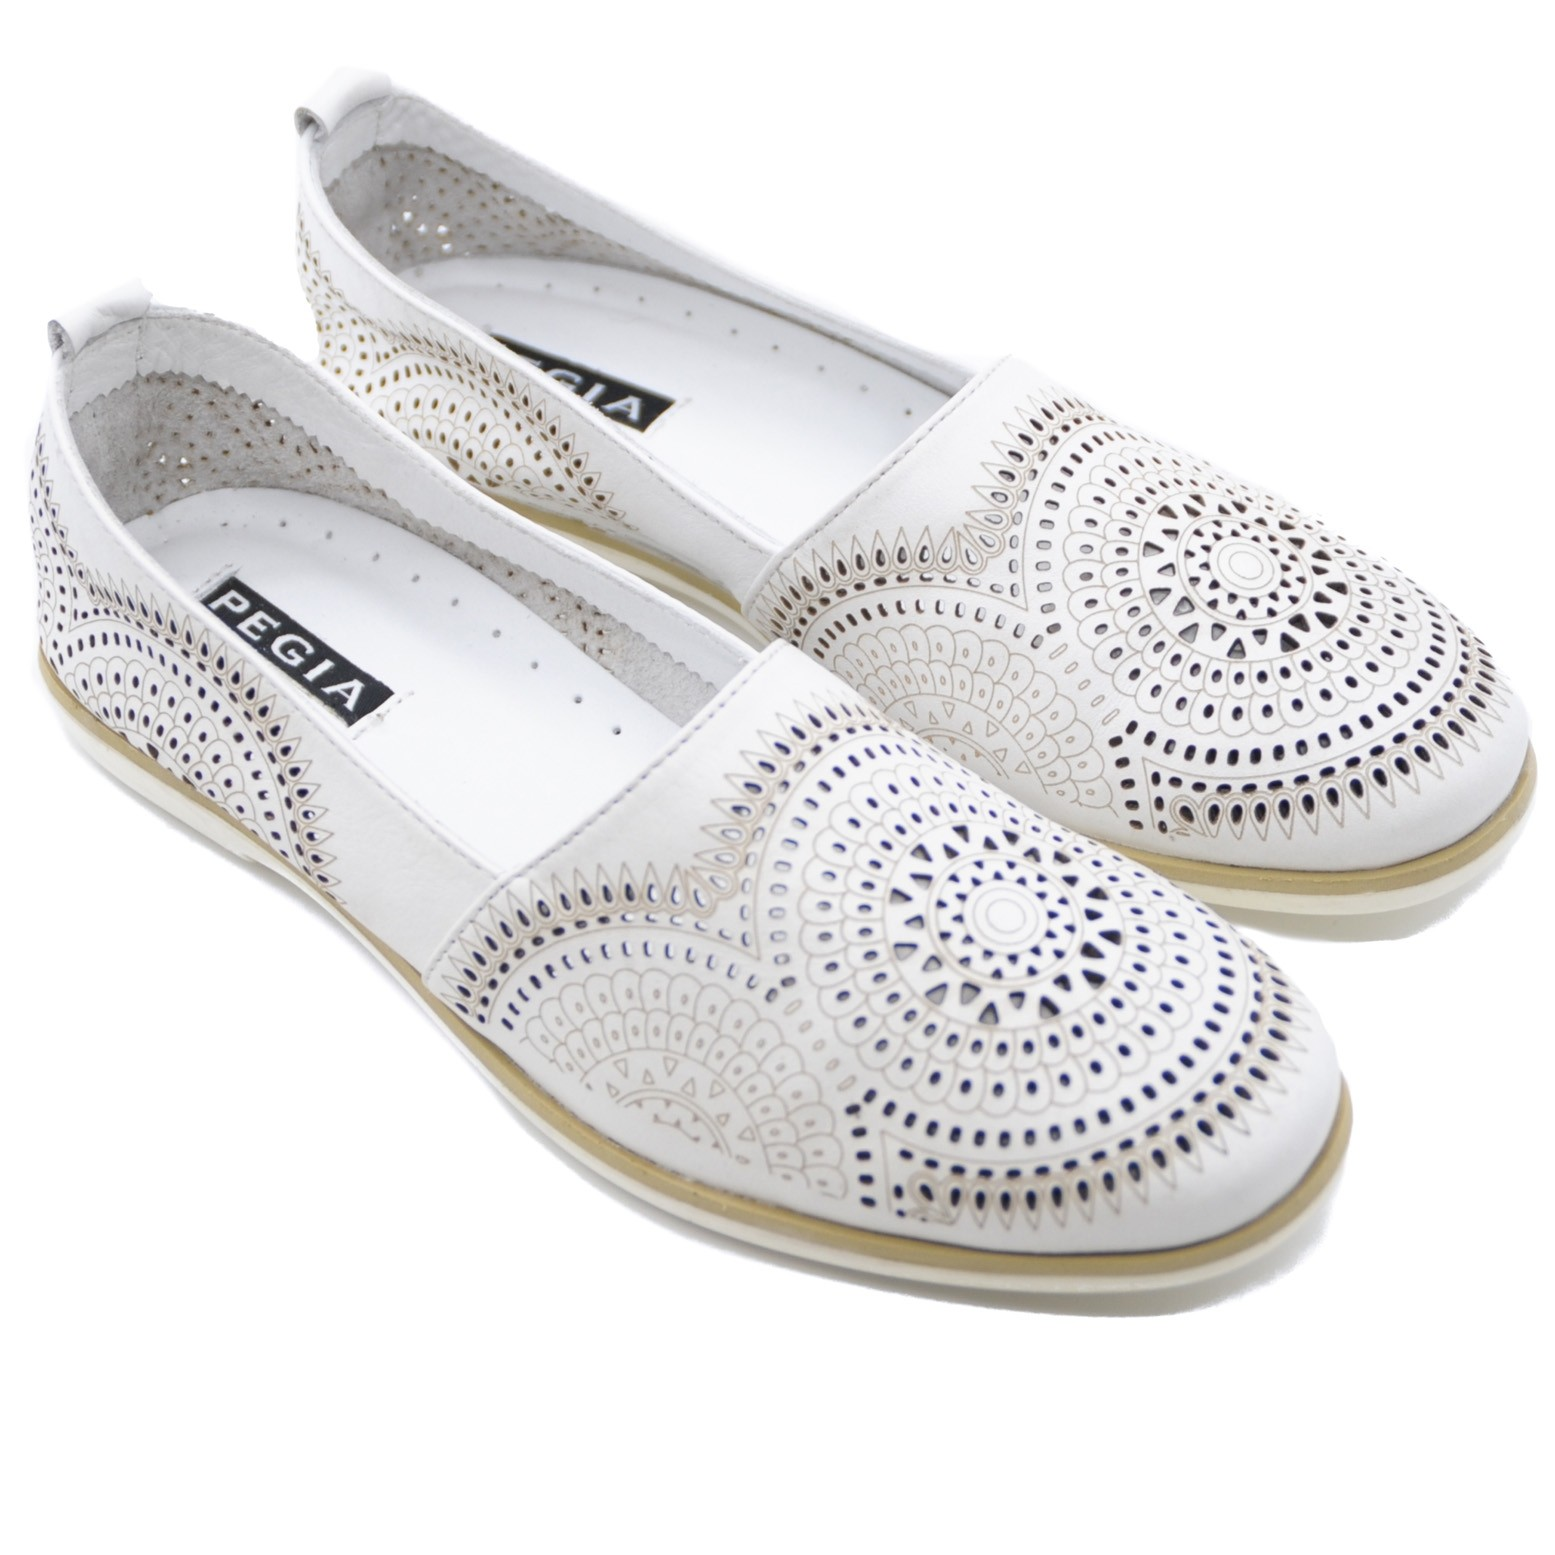 Pegia Ladies Slip On Leather Flats with Distinctive Yet Simple Mosaic Pattern